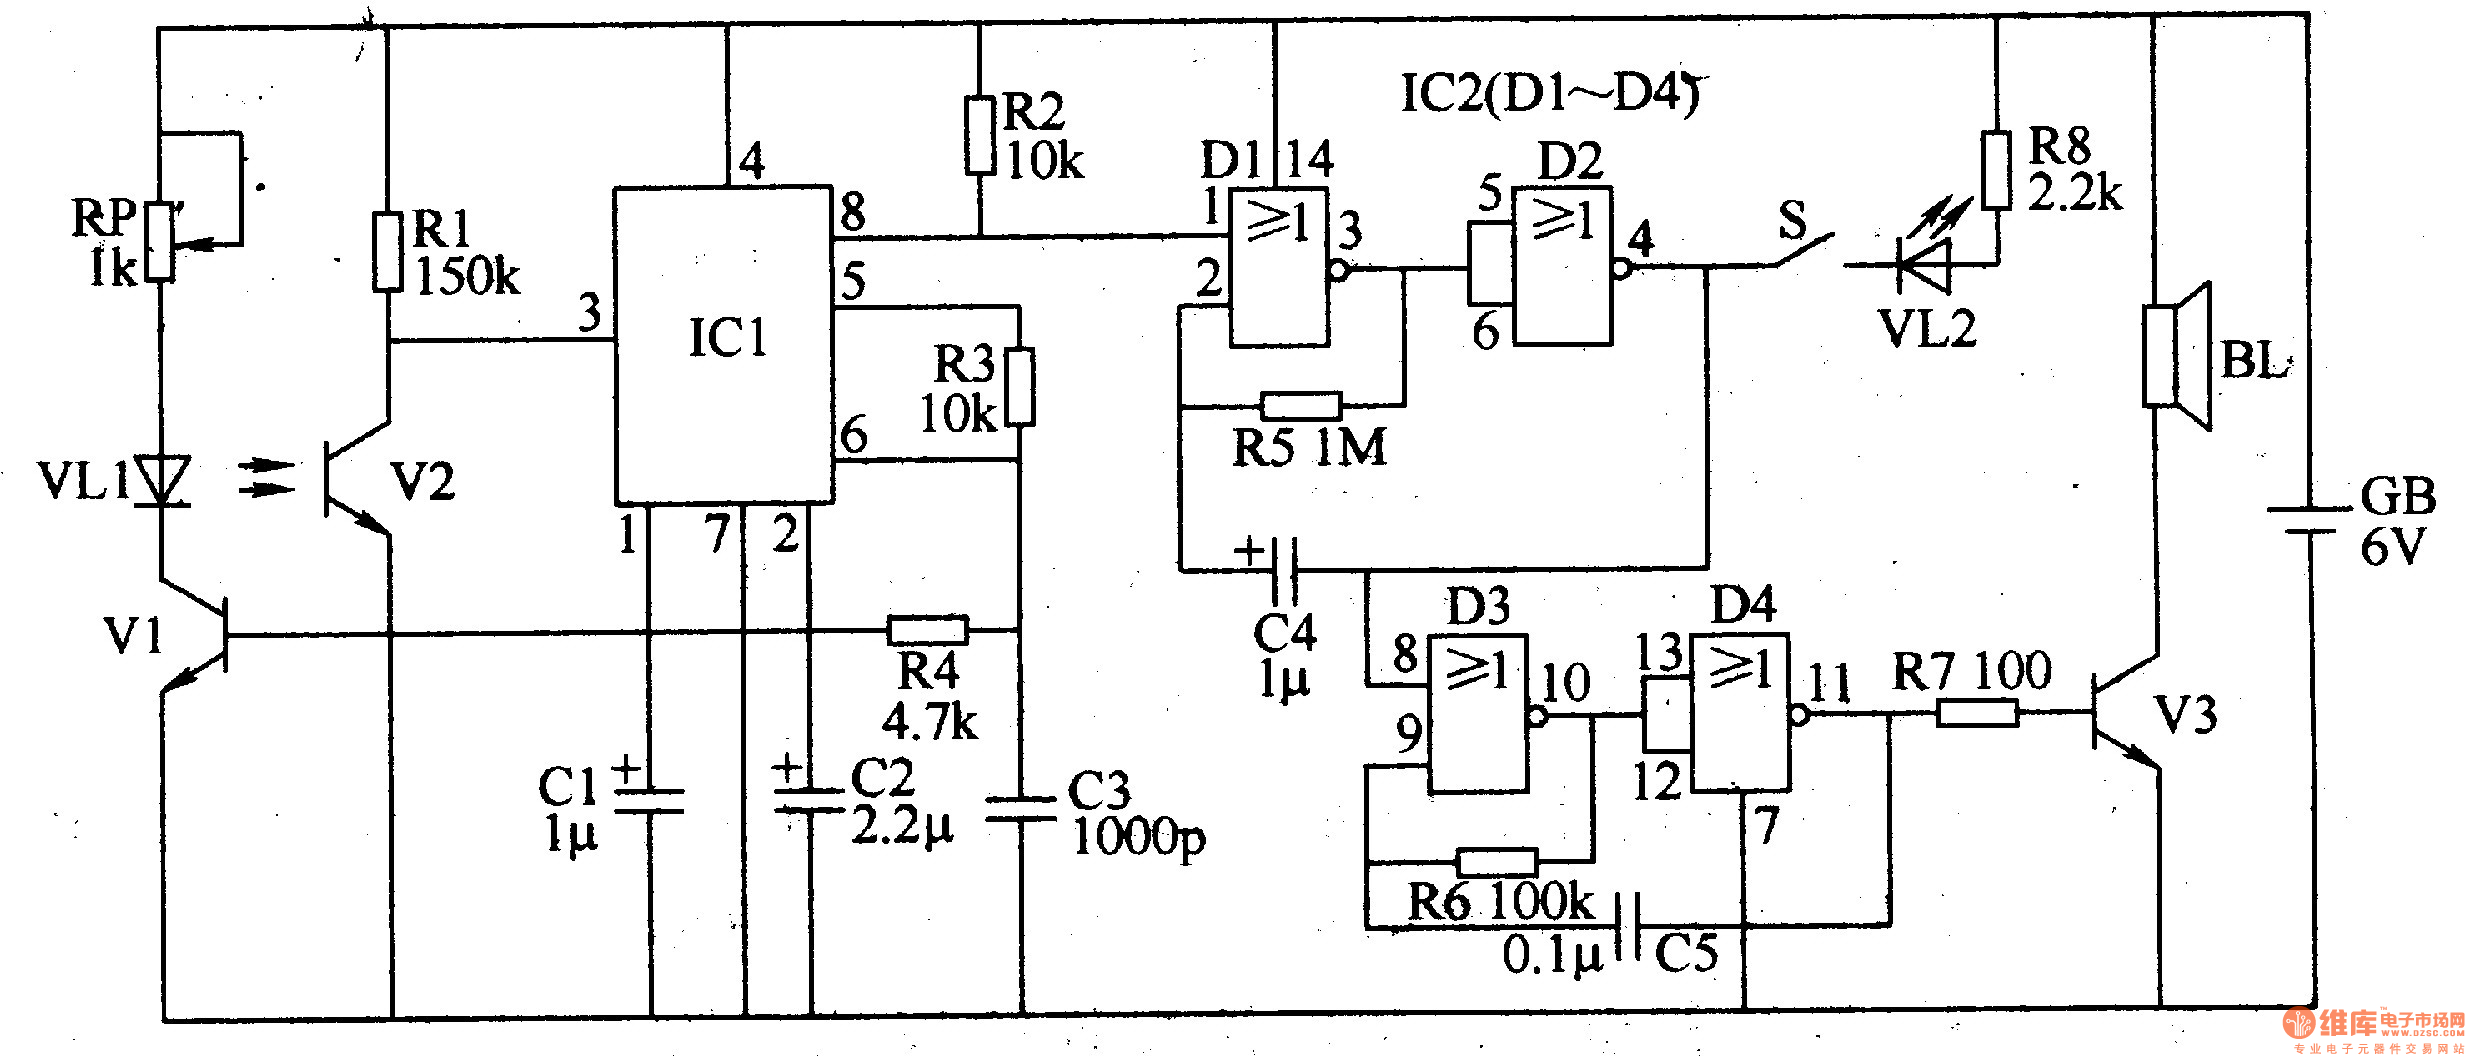 Infrared Reflectance Electronic Doorbell Circuit Diagram Of Door Bell